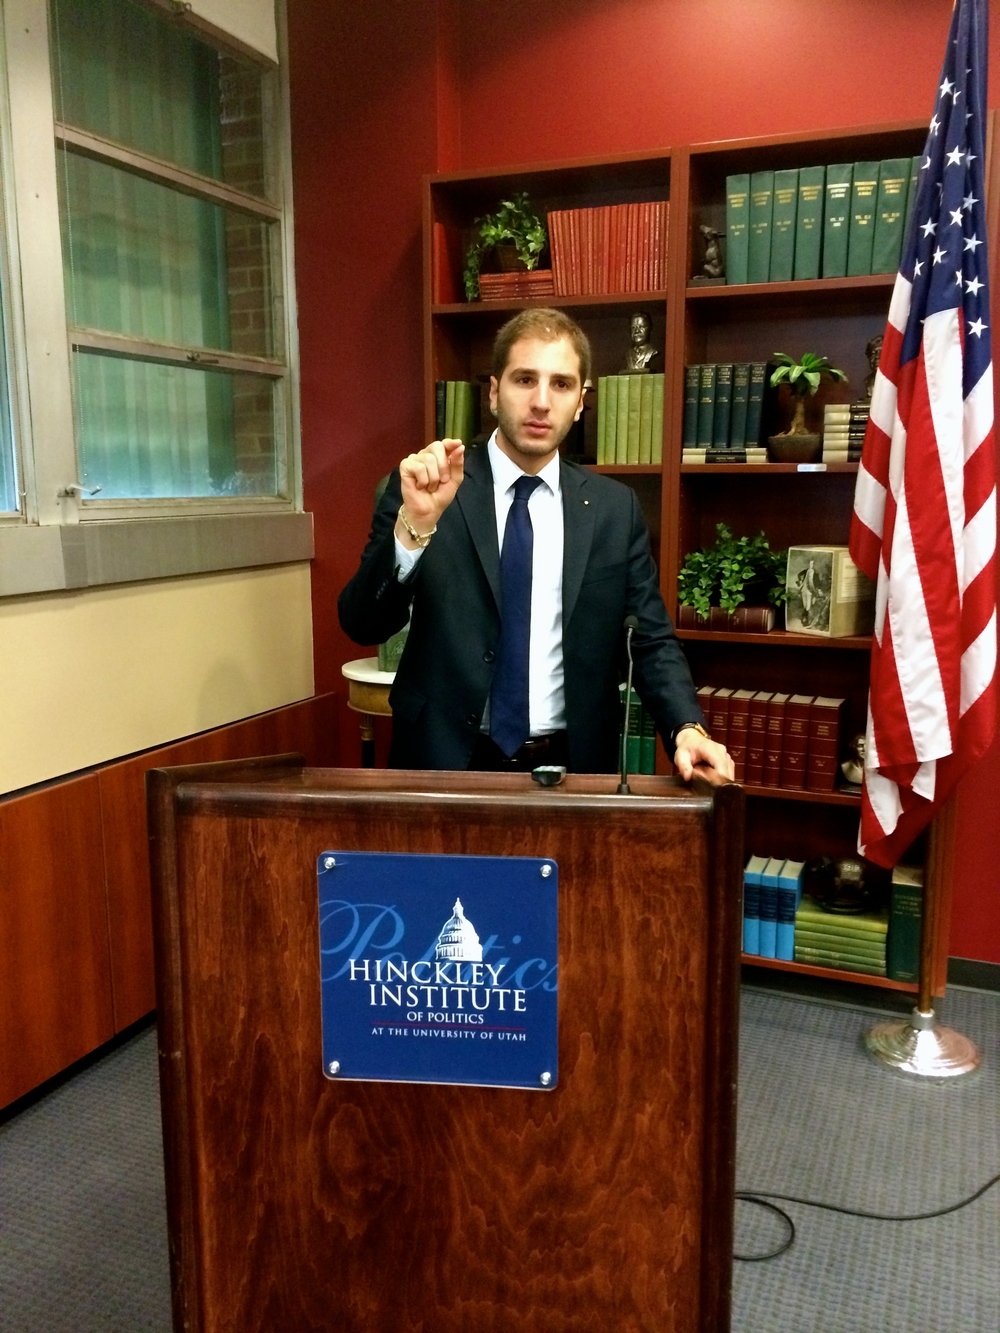 Paul Klimos at the Hinckley Institute of Politics (Utah, USA)